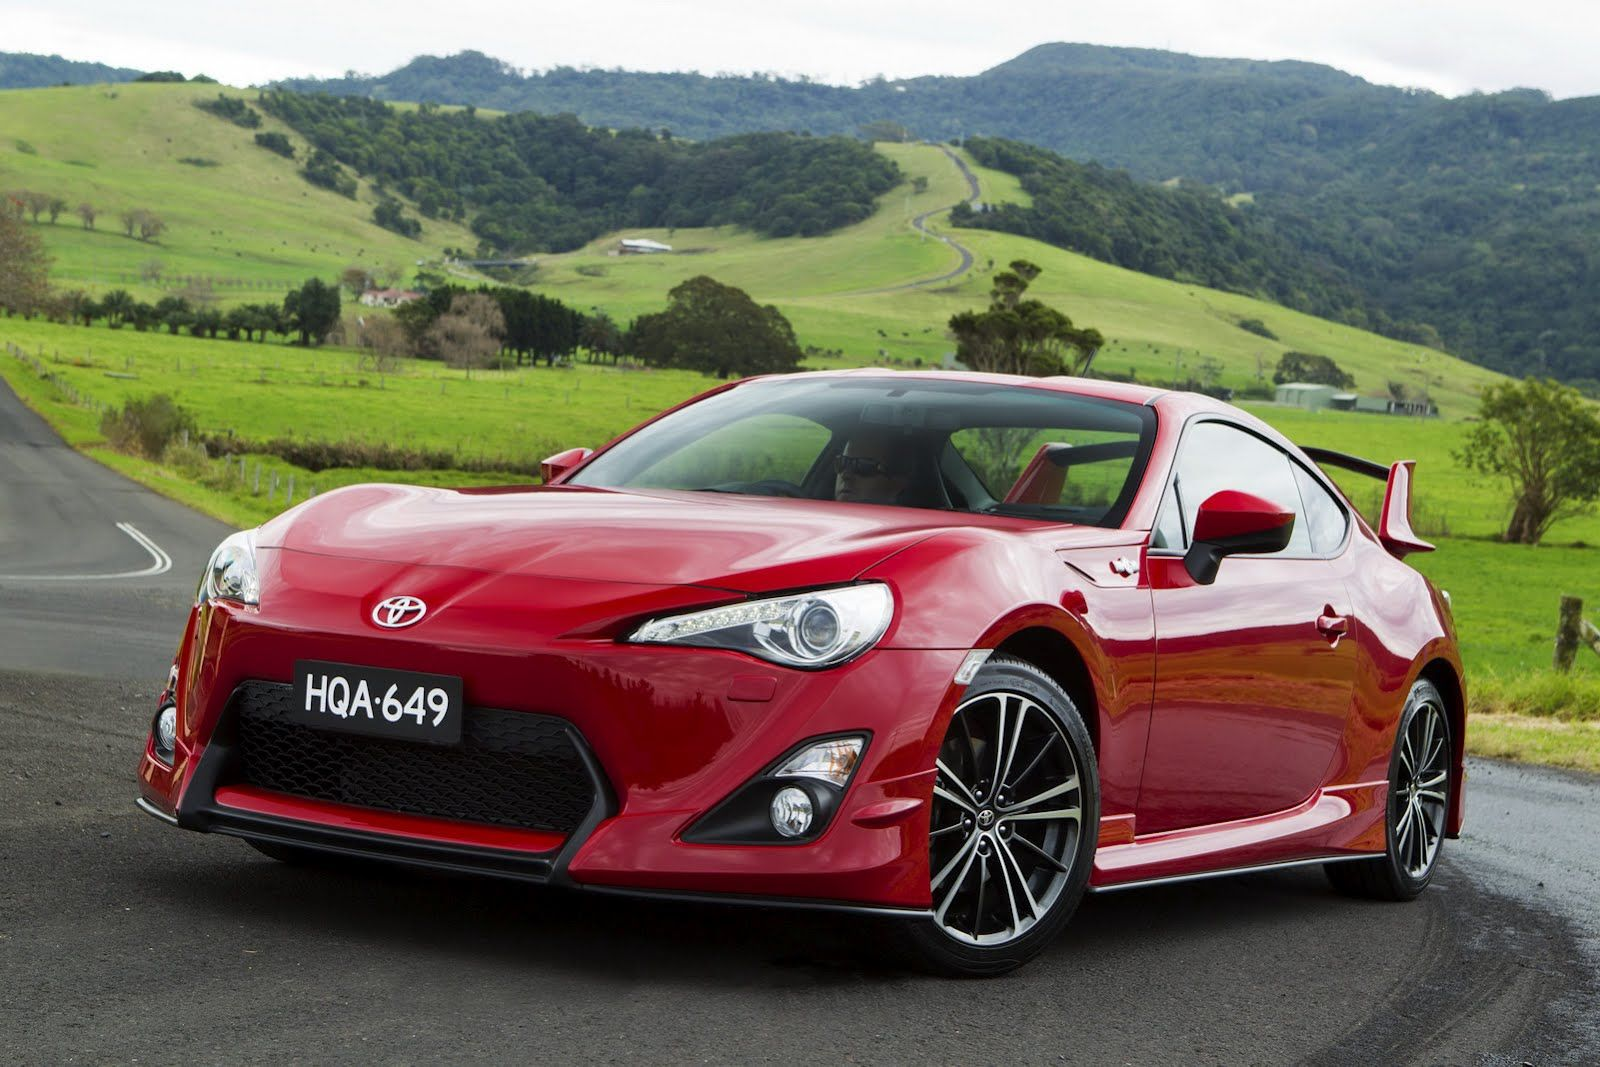 new car launches australia 2014Toyota Launches New Aero Kit with Giant Rear Wing for 86 Sports